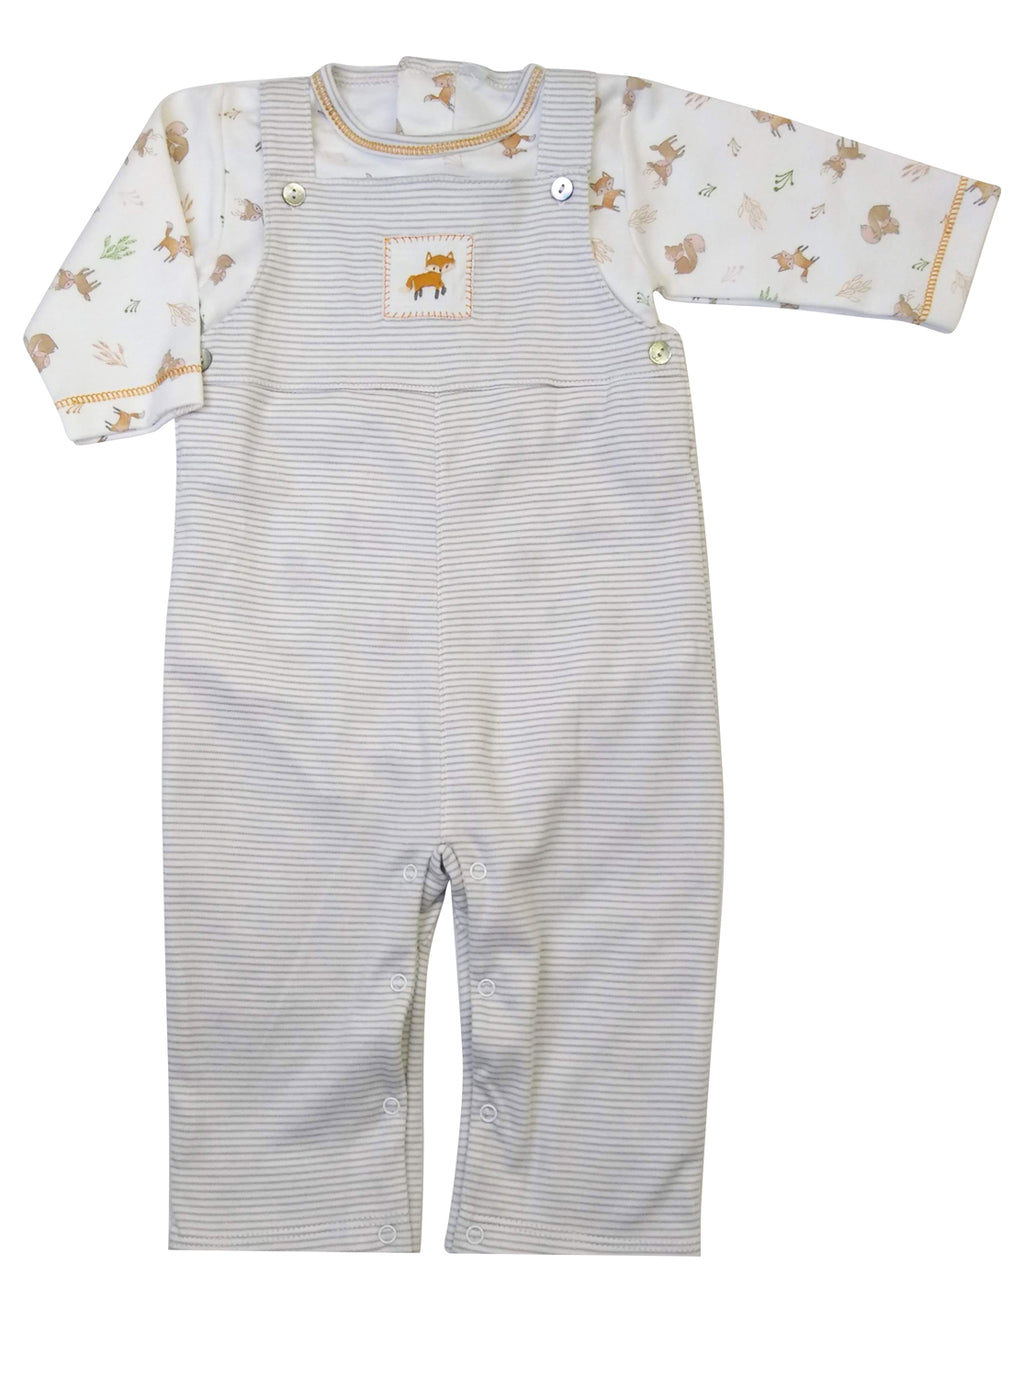 Fox Pima cotton Long overall Set - Little Threads Inc. Children's Clothing